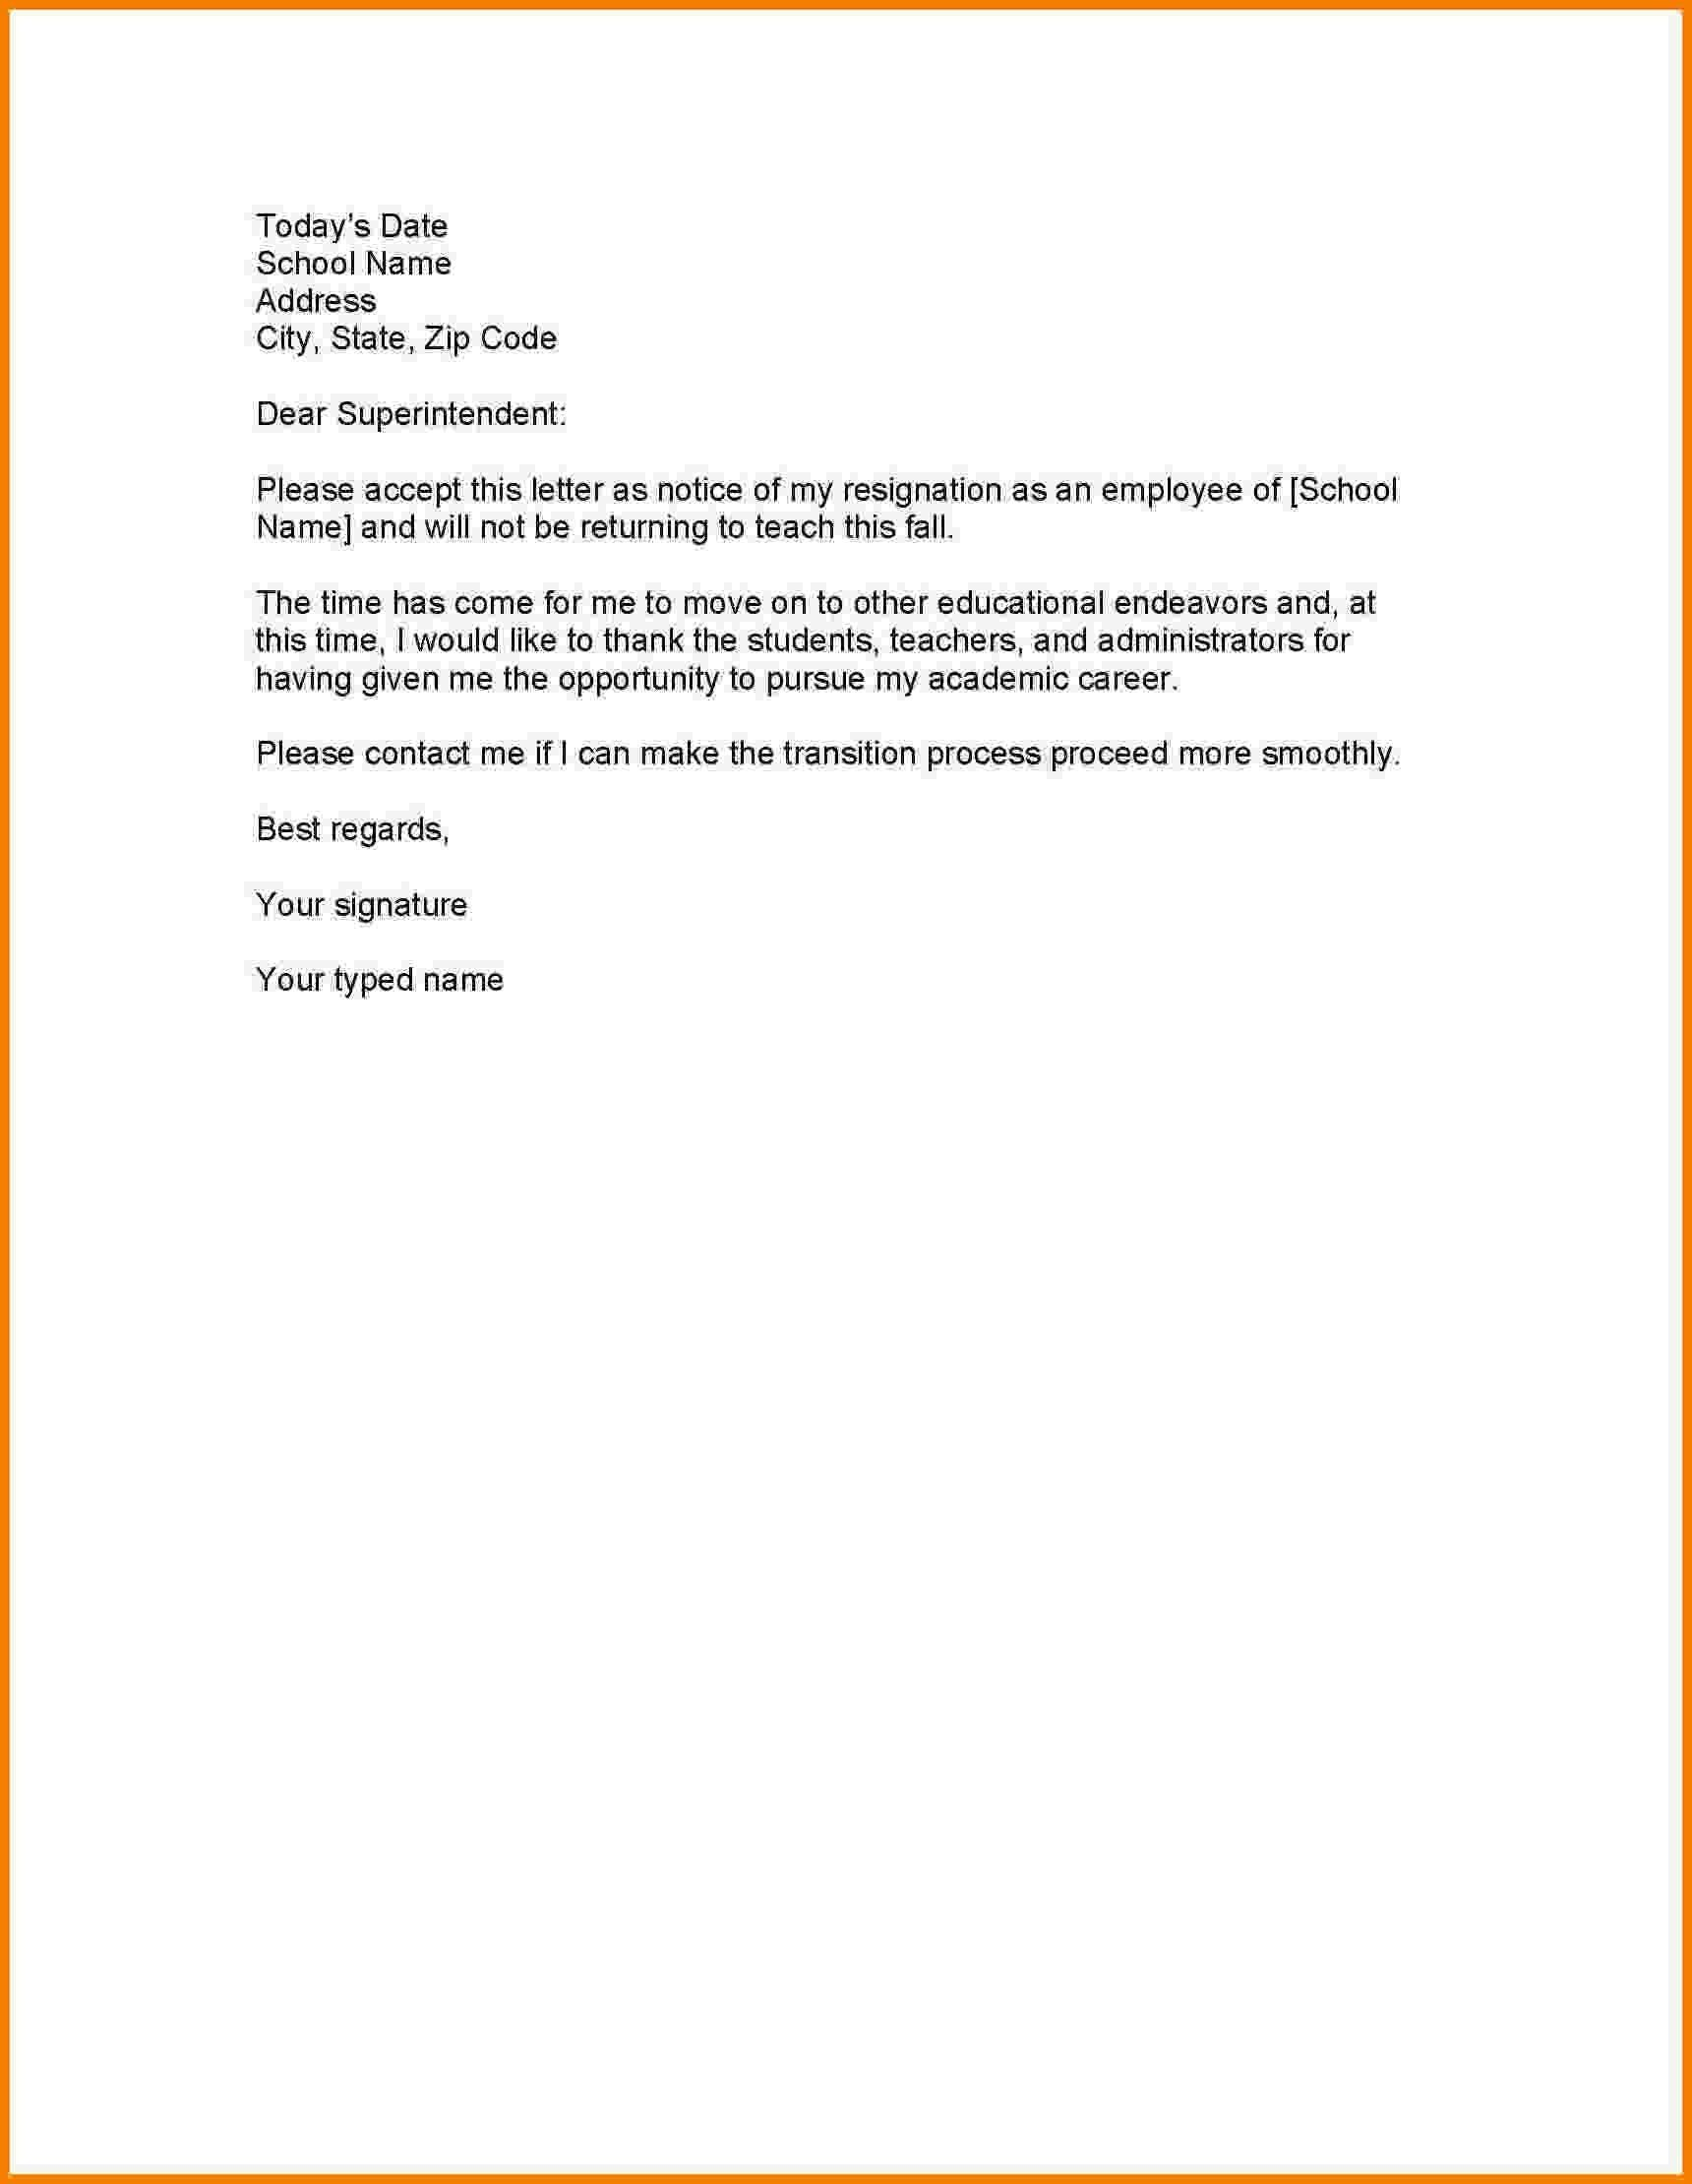 Resignation Letter From Fulltime To Part Time from i.pinimg.com